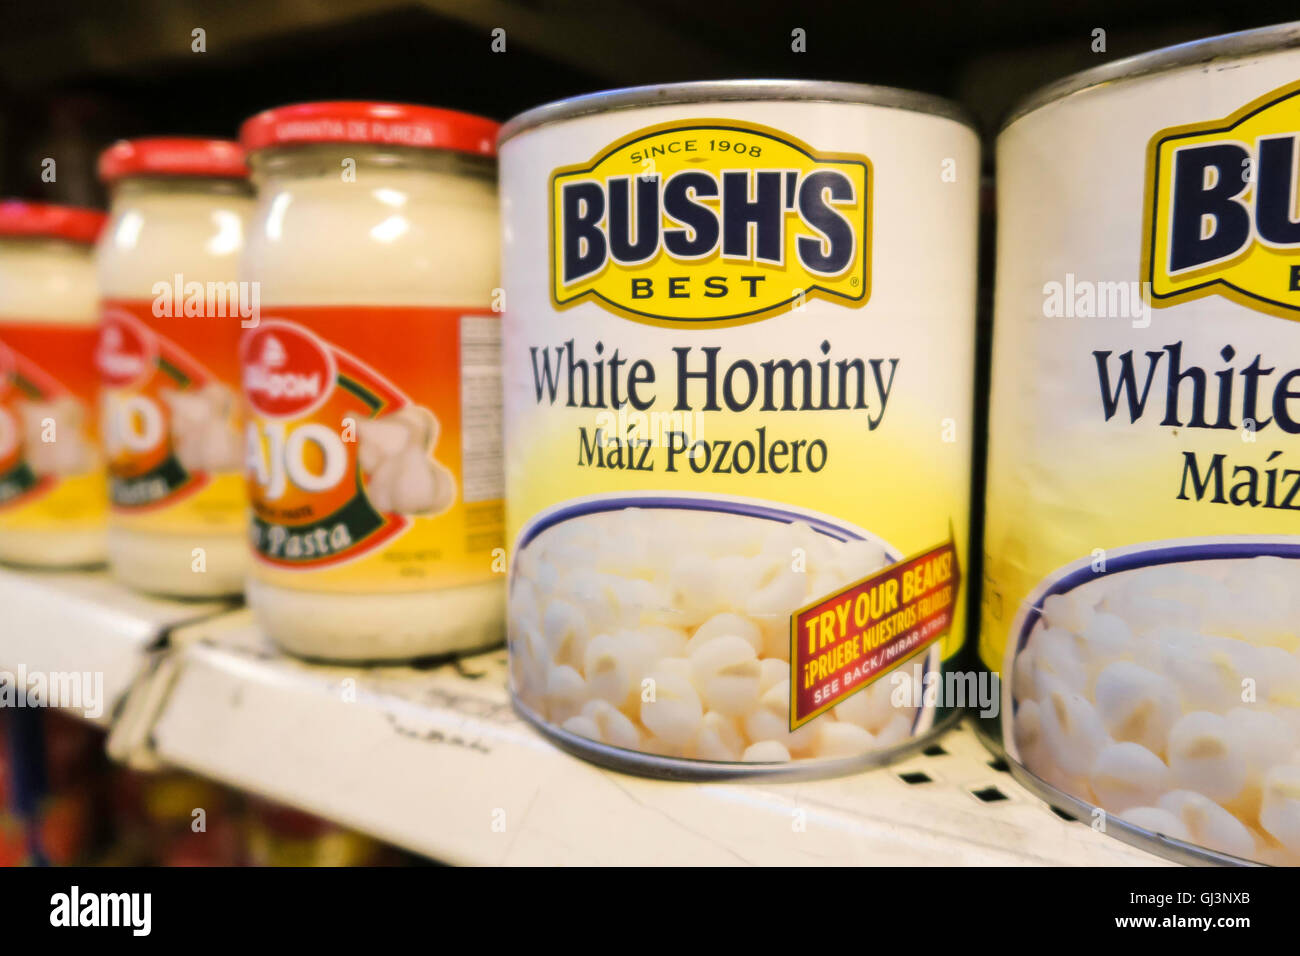 Cans of Bush's Brand White Hominy, Essex Street Market, NYC - Stock Image